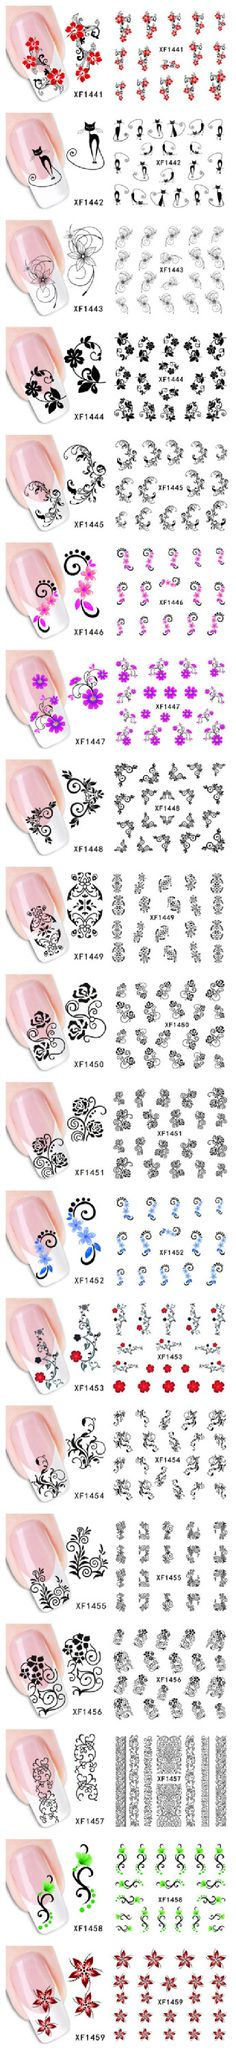 water transfer nail sticker wall sticker 3d Colored Nail Sticker,Handmade Nail Art,Water Nail Decal